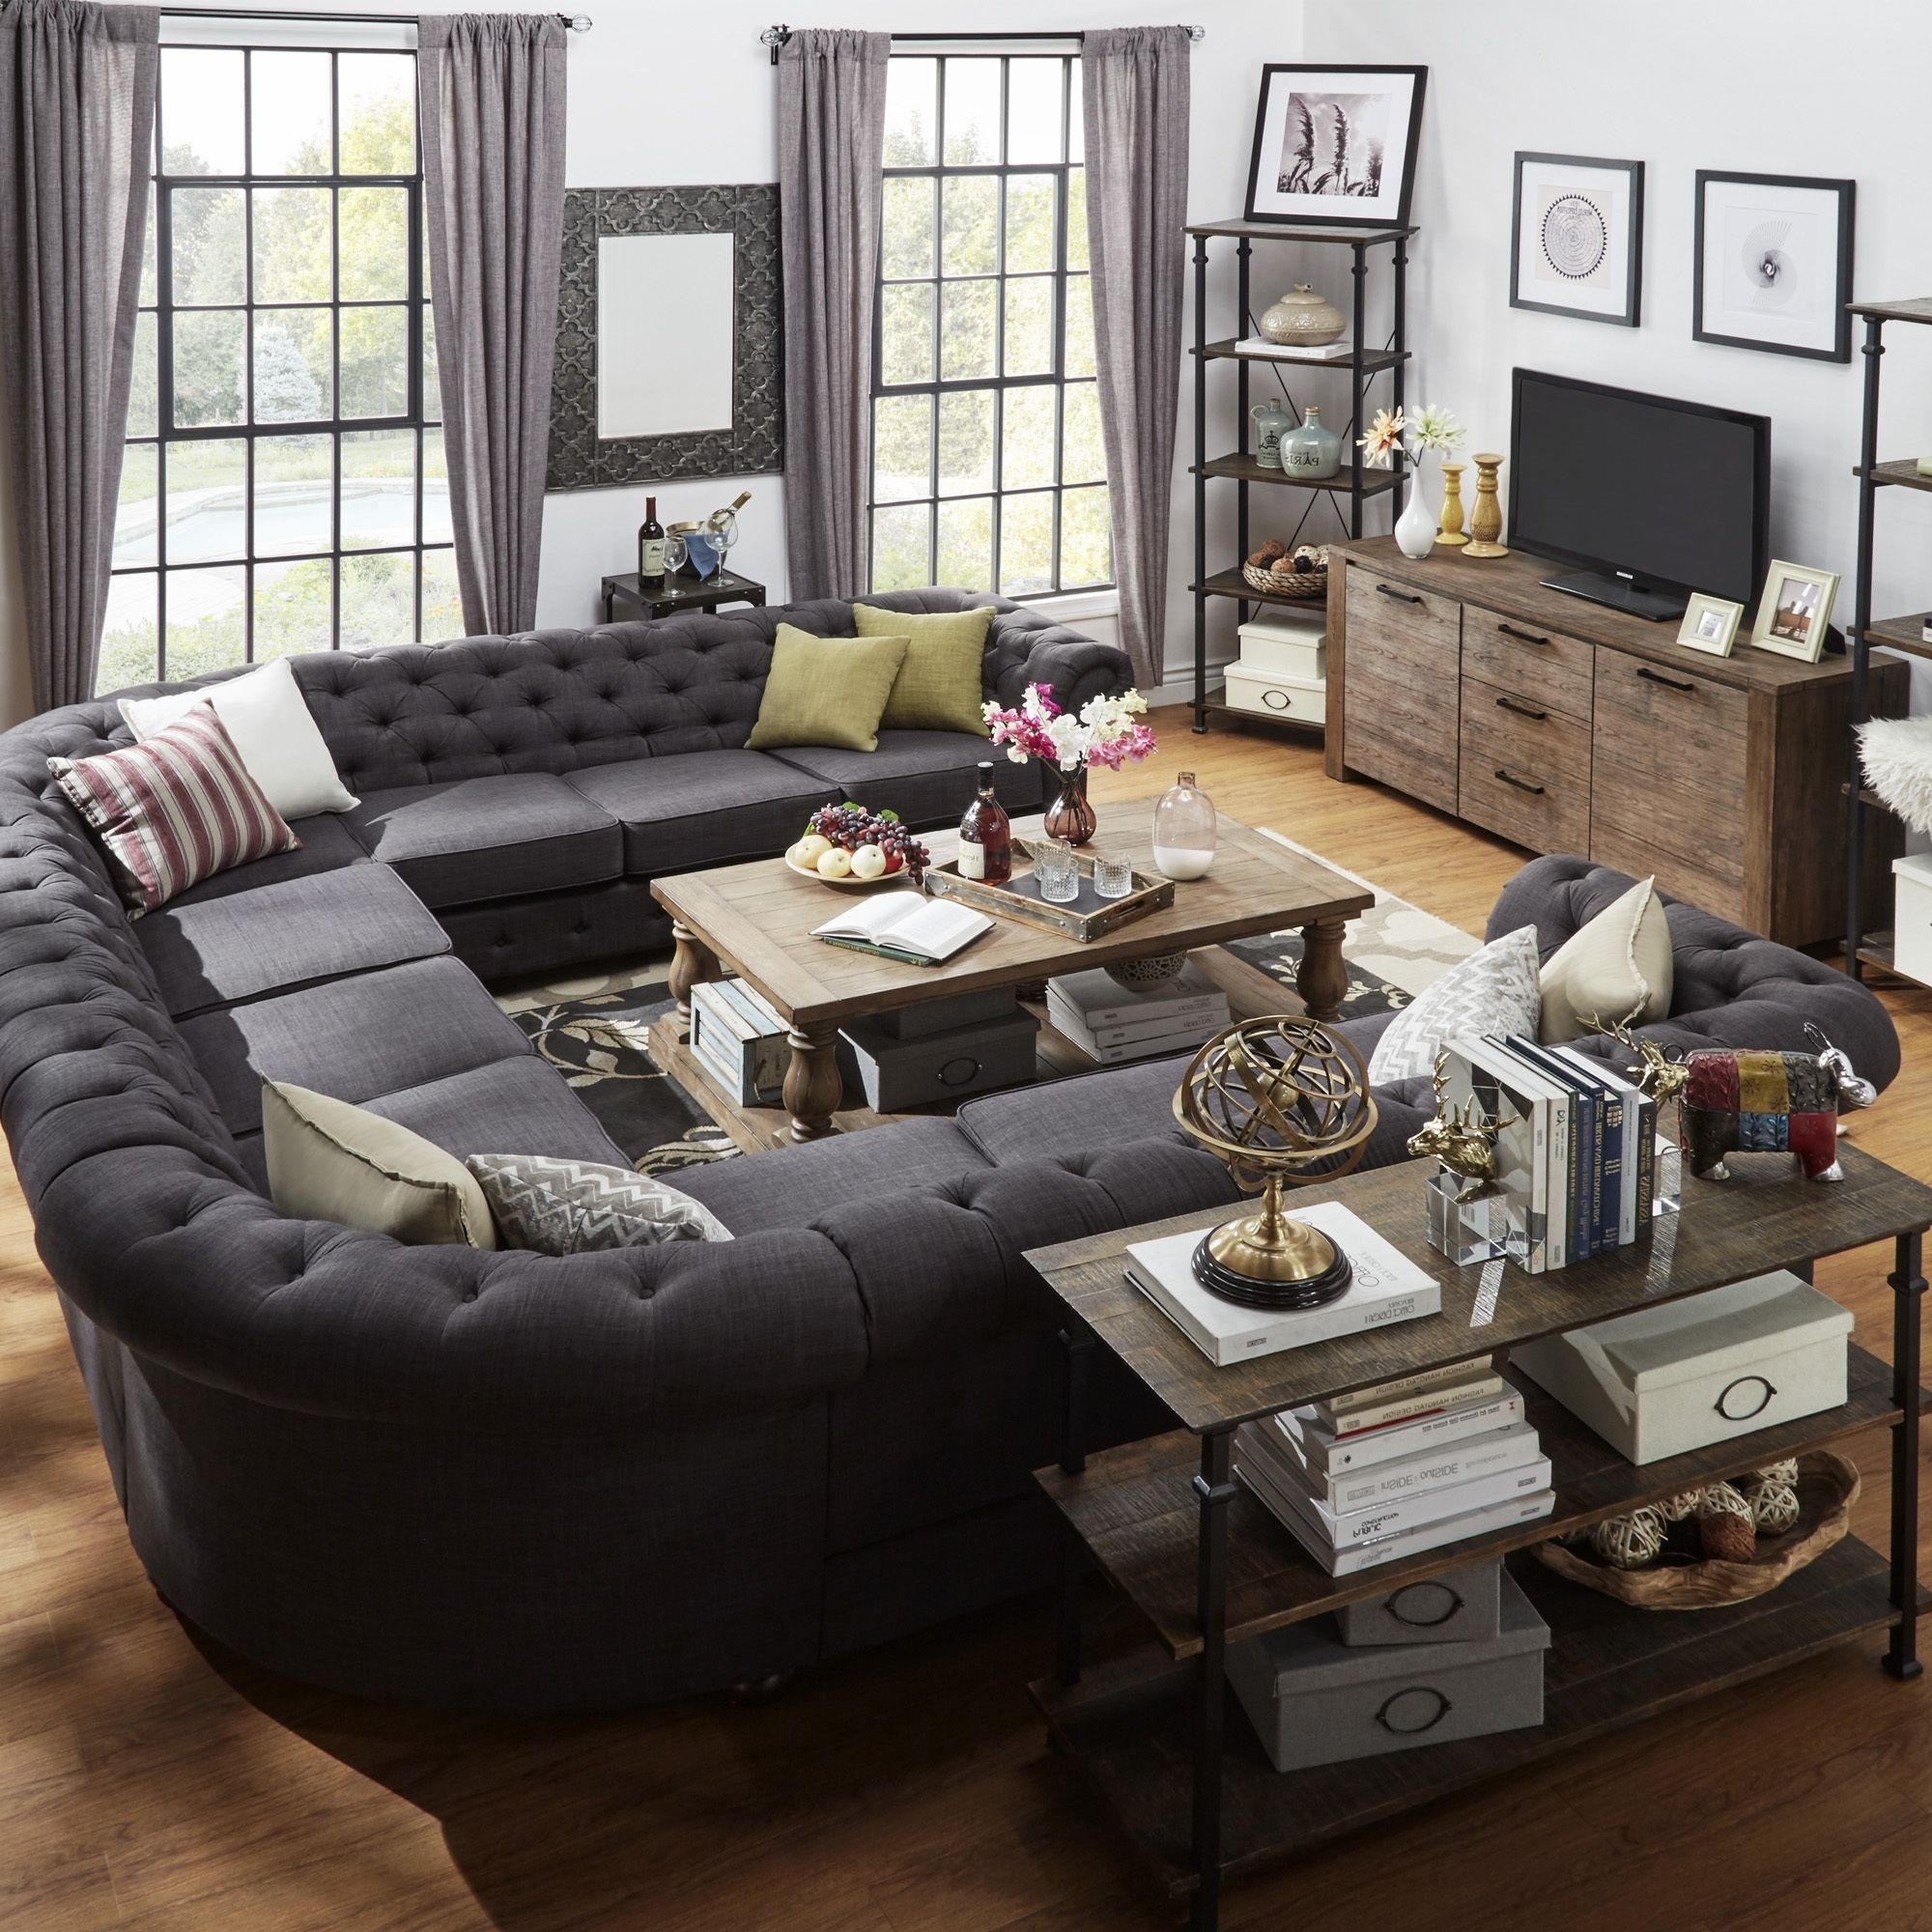 Most Recent Deep U Shaped Sectionals For Signal Hills Knightsbridge Tufted Scroll Arm Chesterfield 11 Seat (View 10 of 20)